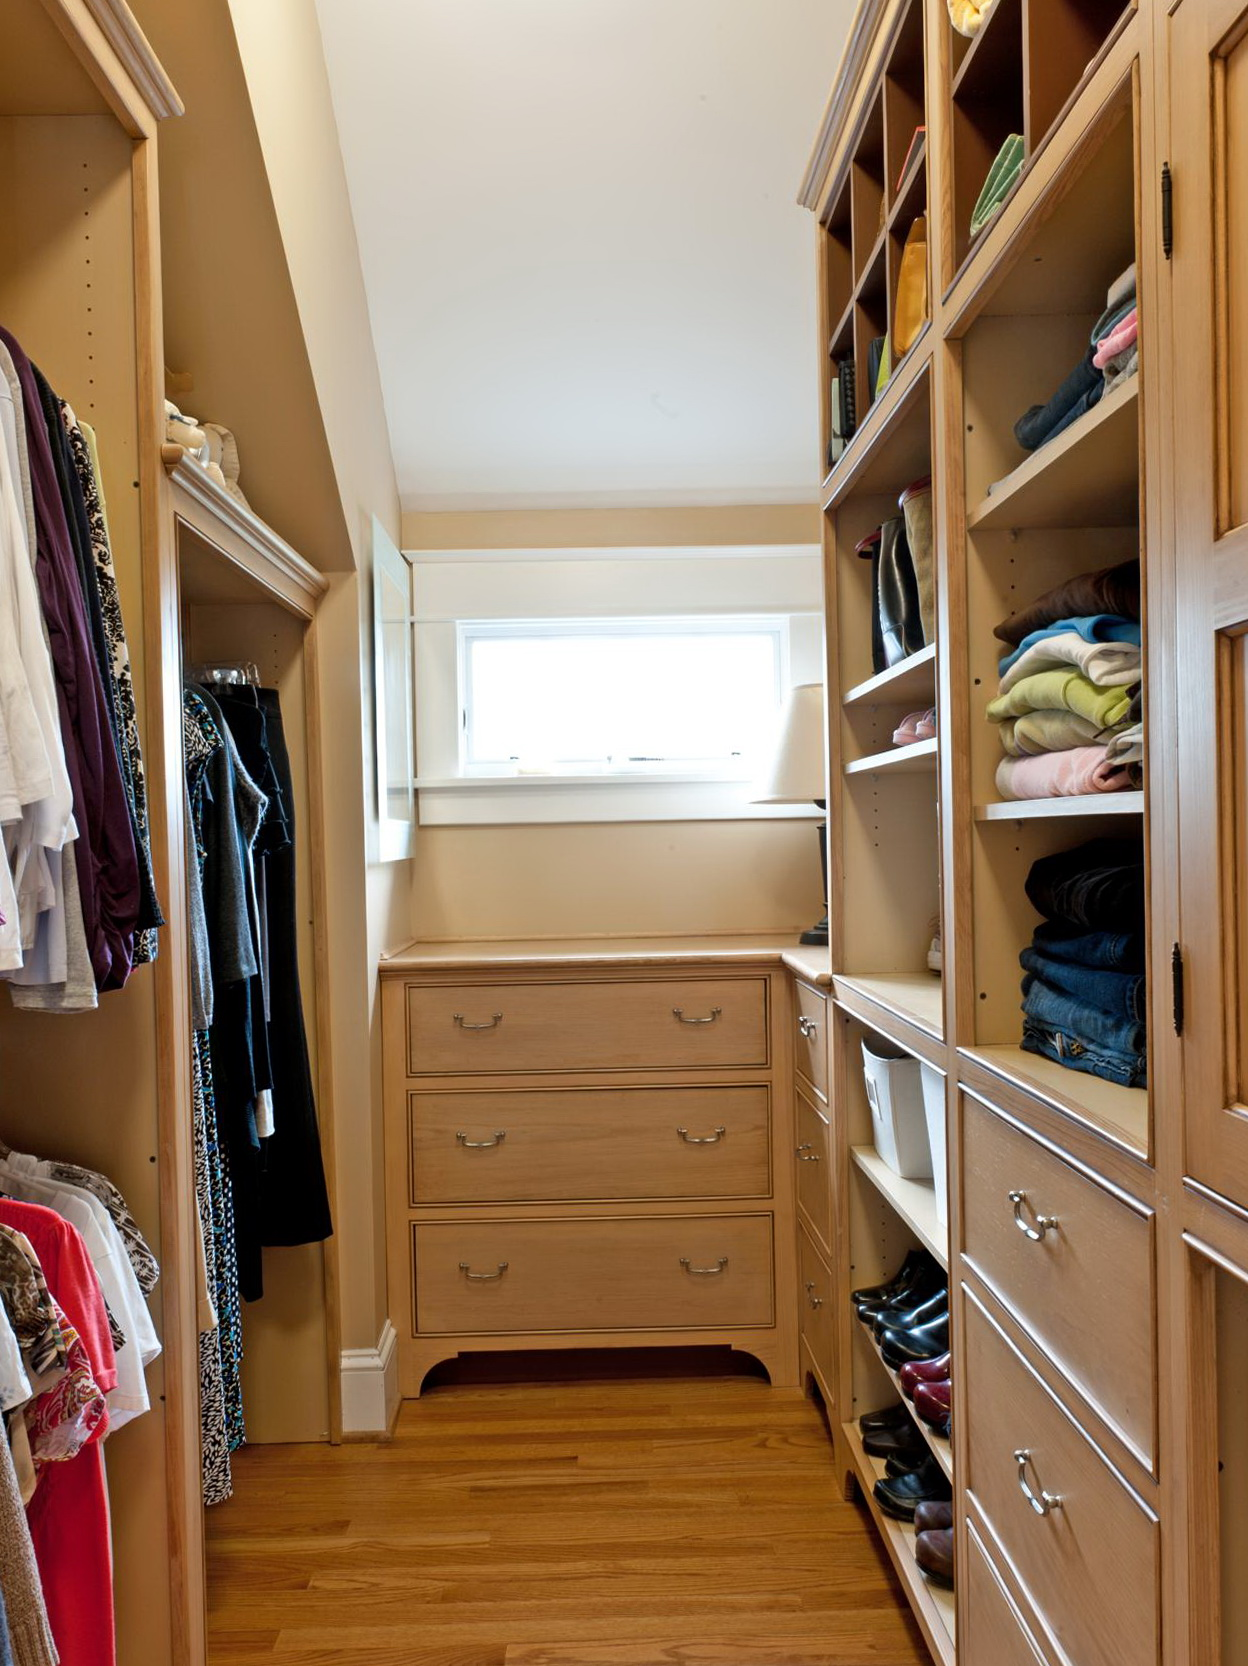 Design Your Own Closet Space